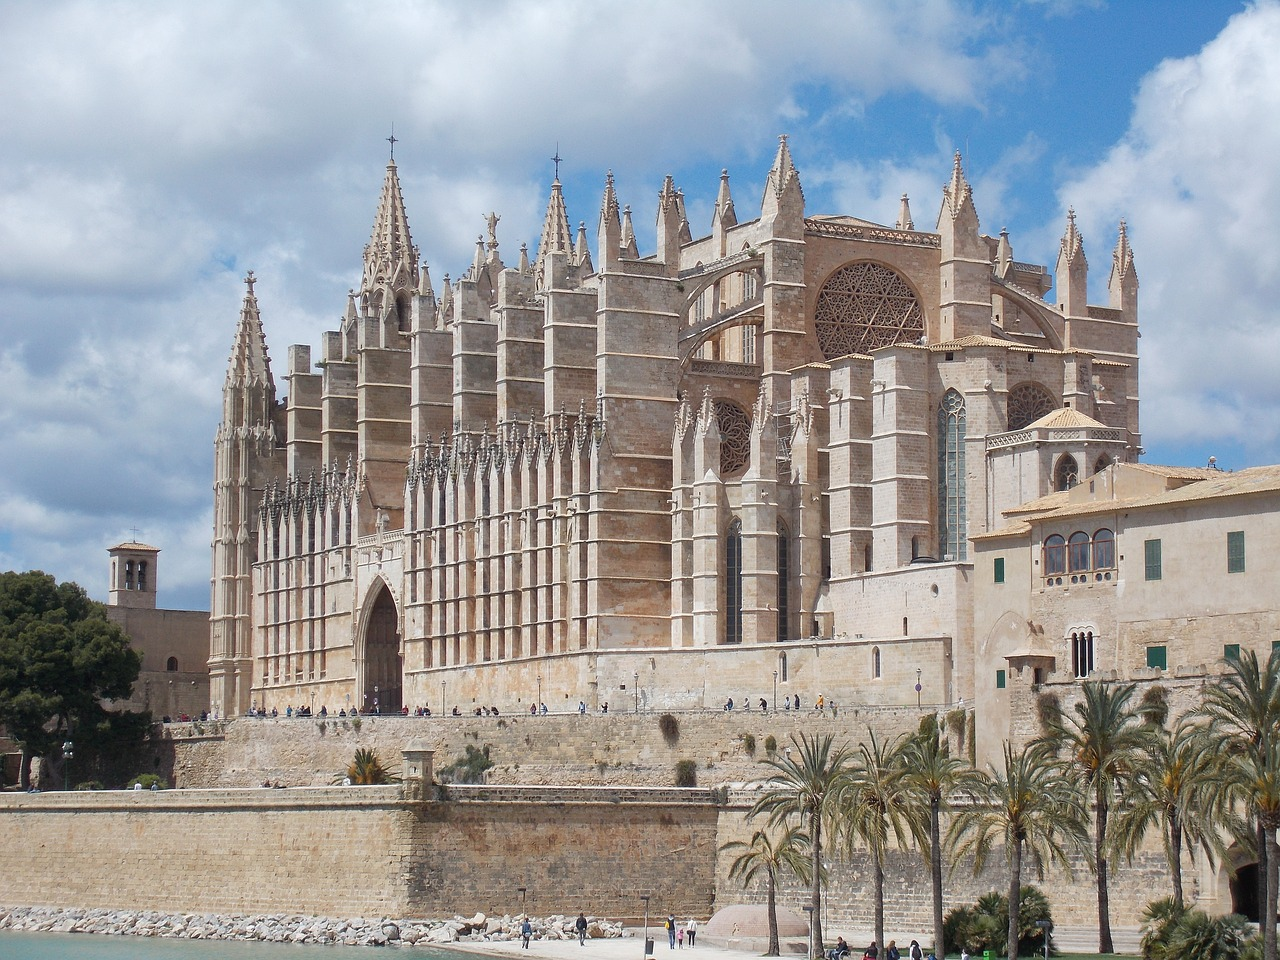 cathedral-of-saint-mary-1740749_1280